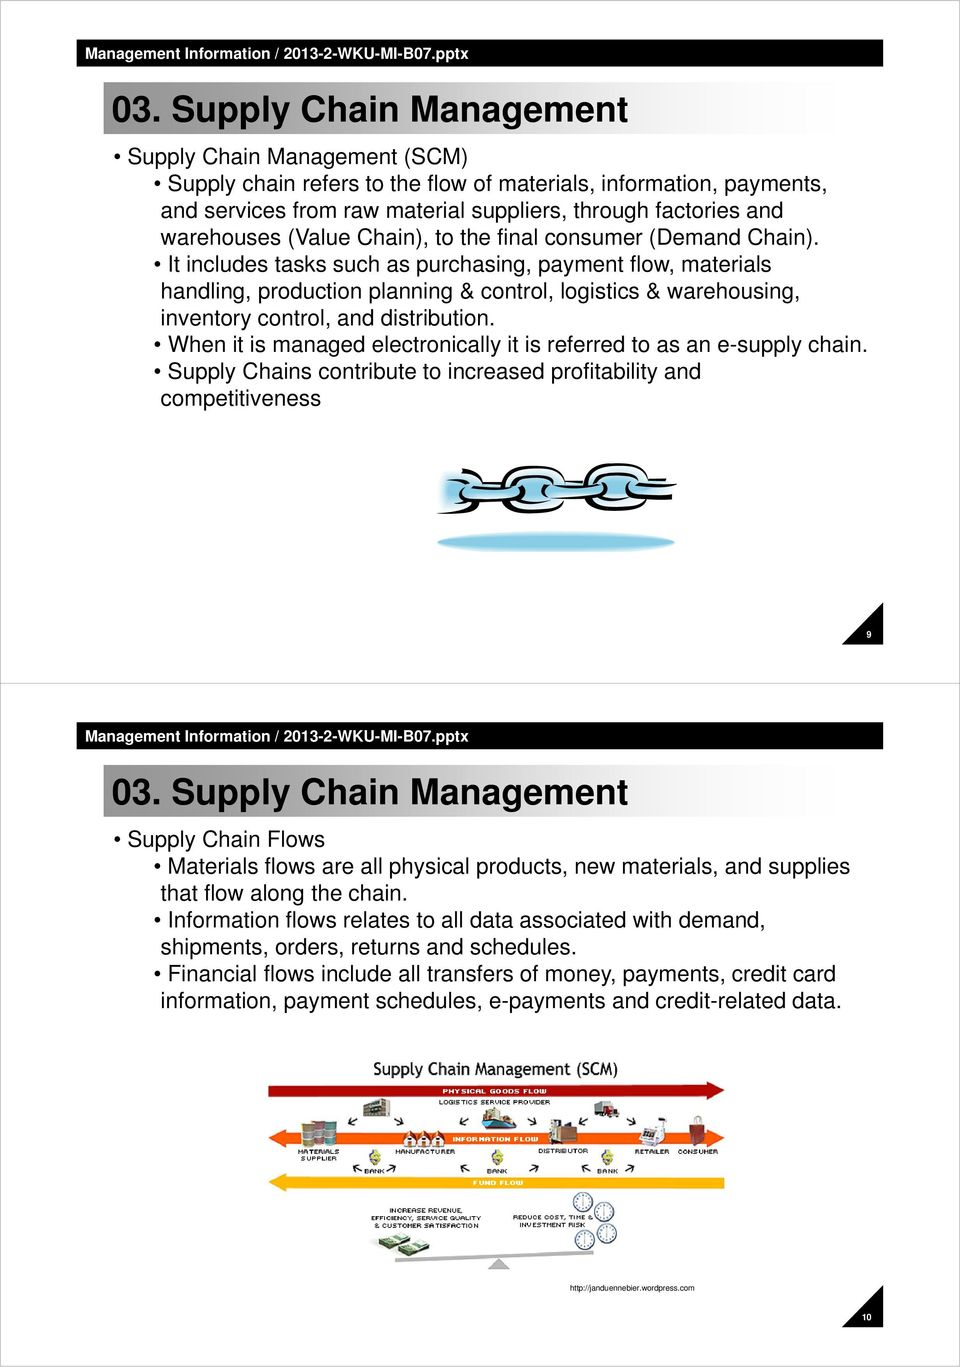 When it is managed electronically it is referred to as an e-supply chain.